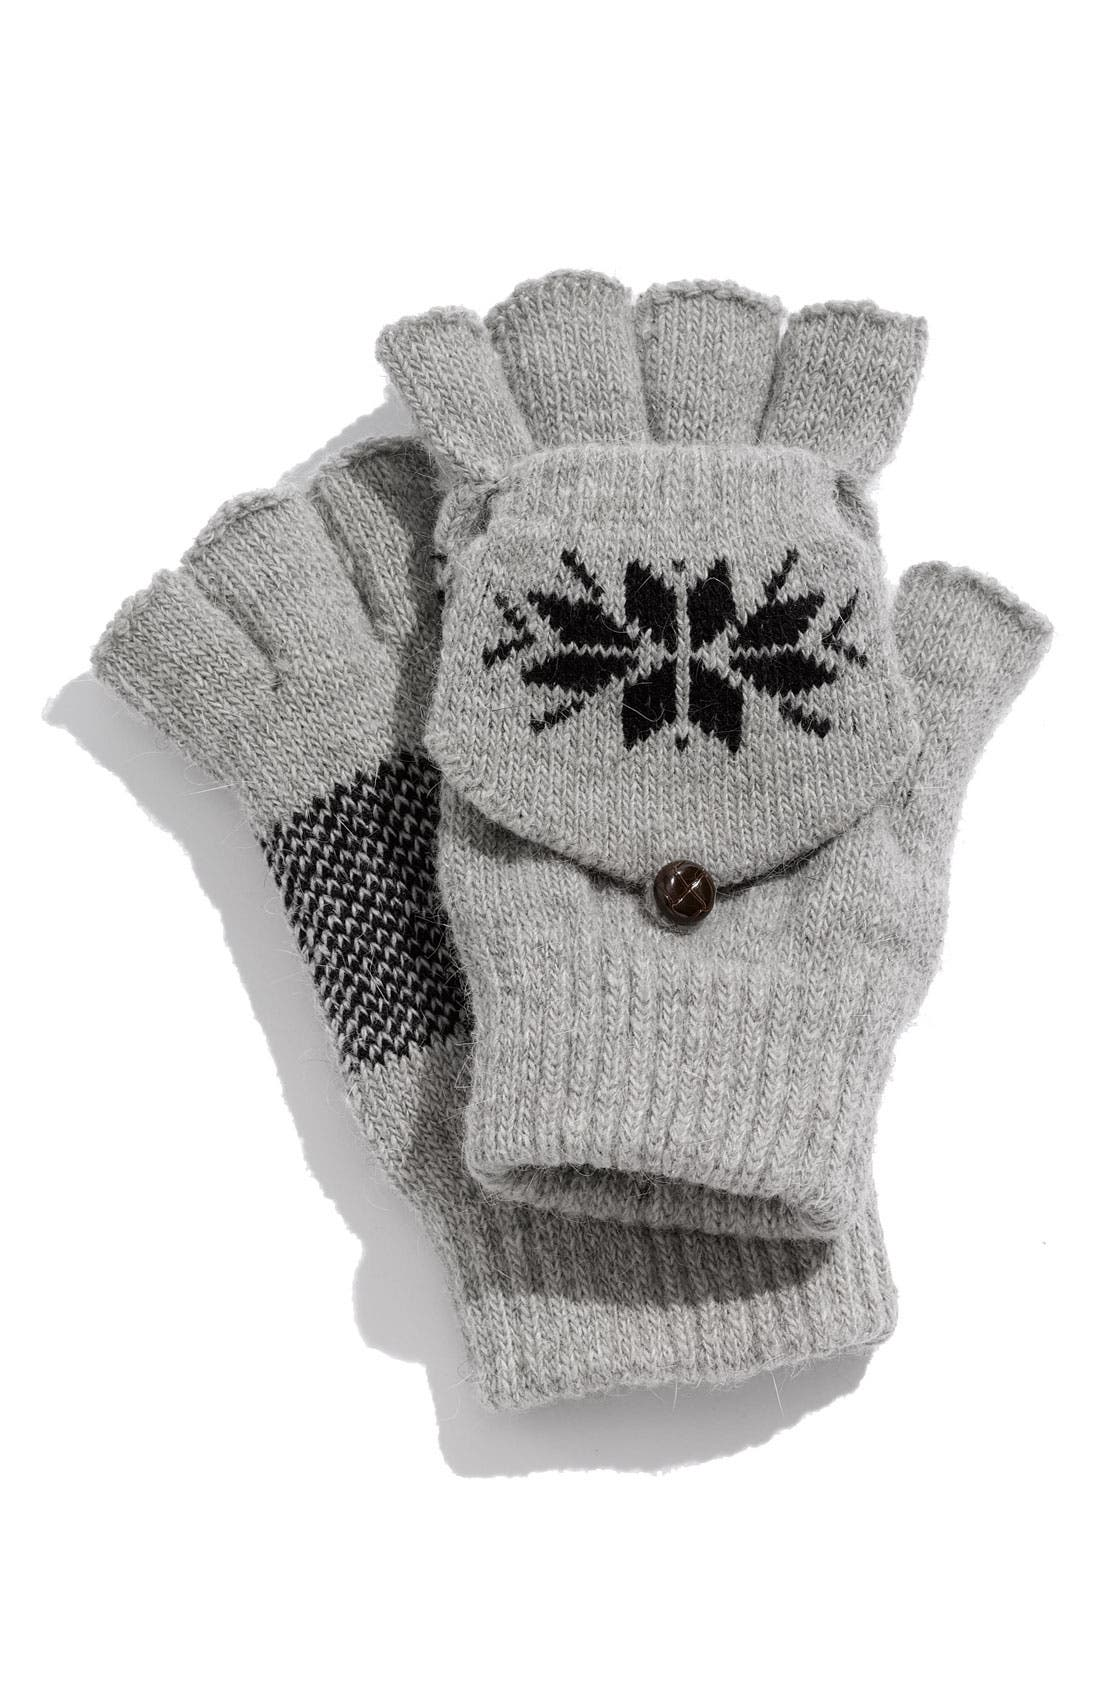 Main Image - The Accessory Collective Nordic Convertible Fingerless Gloves